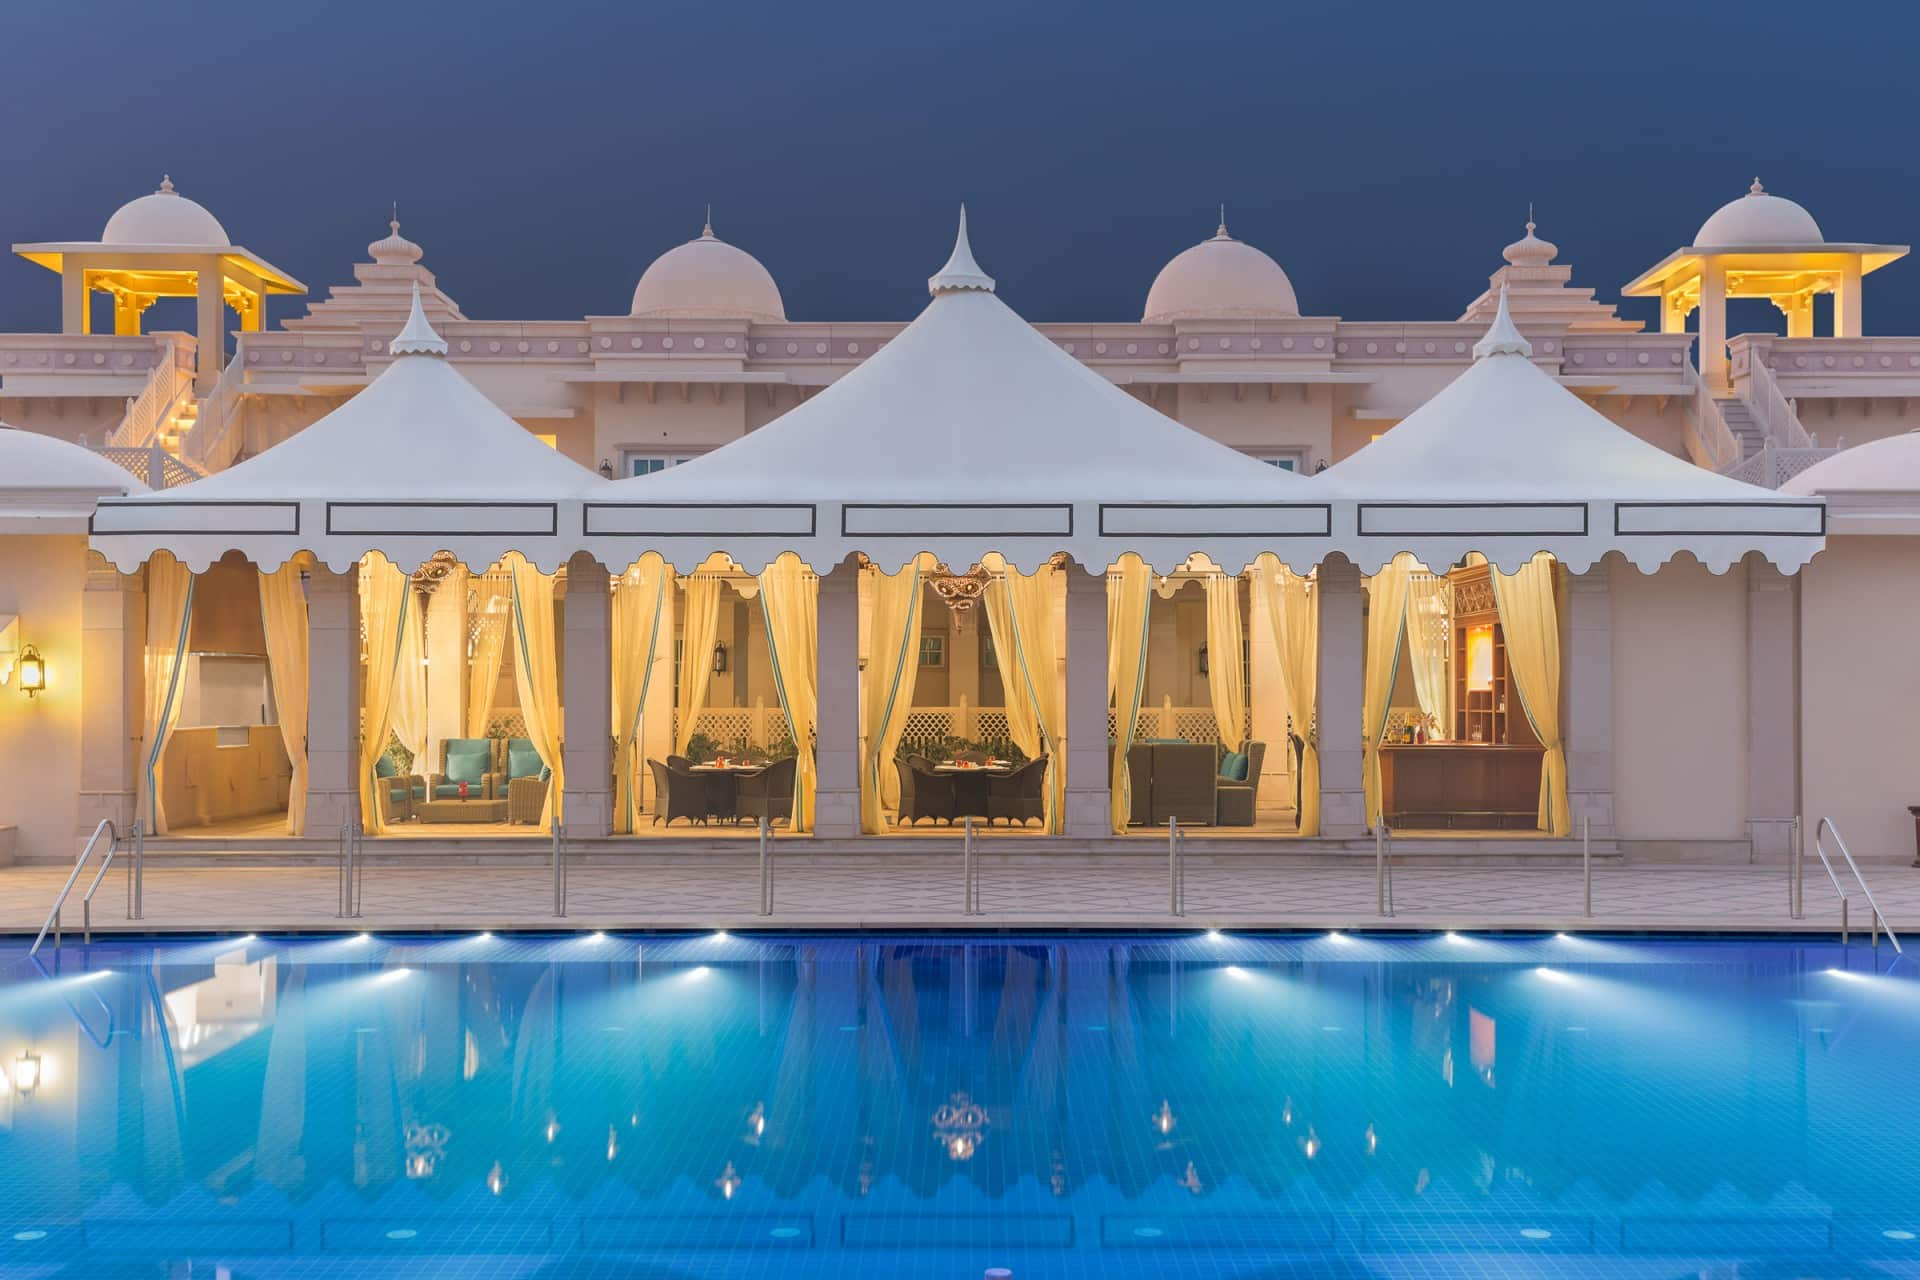 Best Architecture Photographer Delhi India | Collections of Luxury Restaurant Poolside Photography India